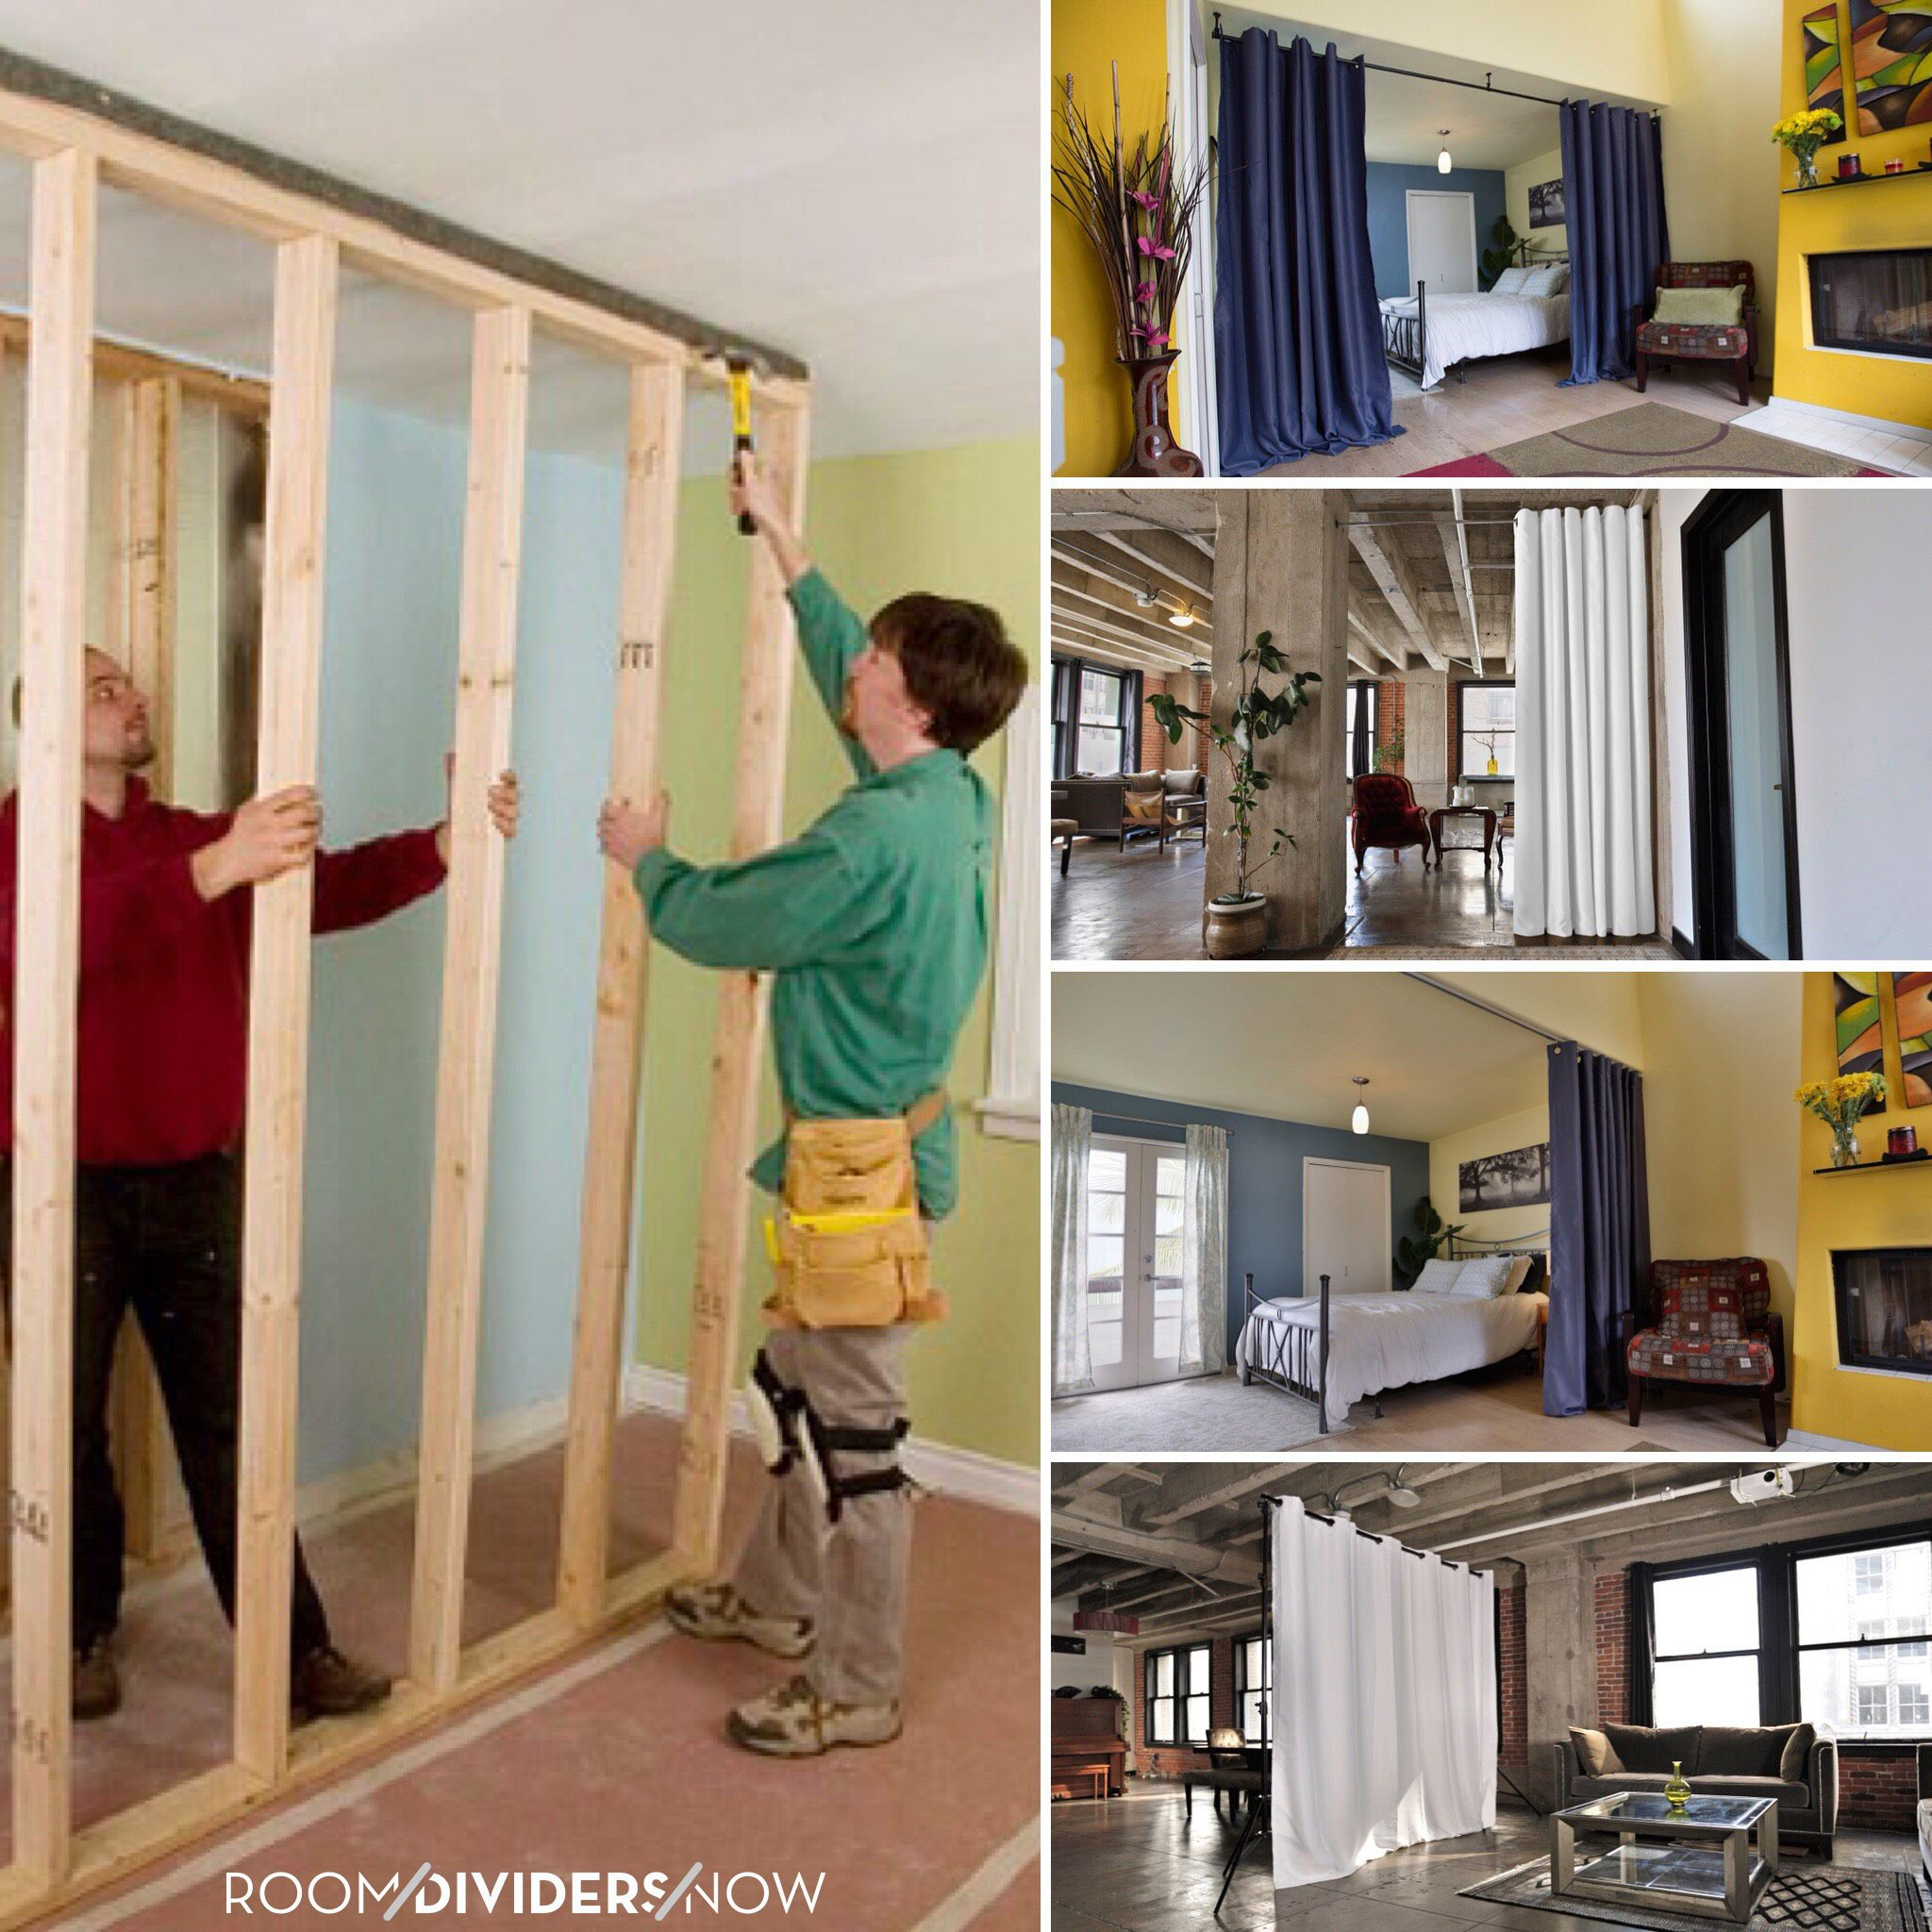 Easy To Set Up Room Divider Kit Or Expensive Temporary Wall